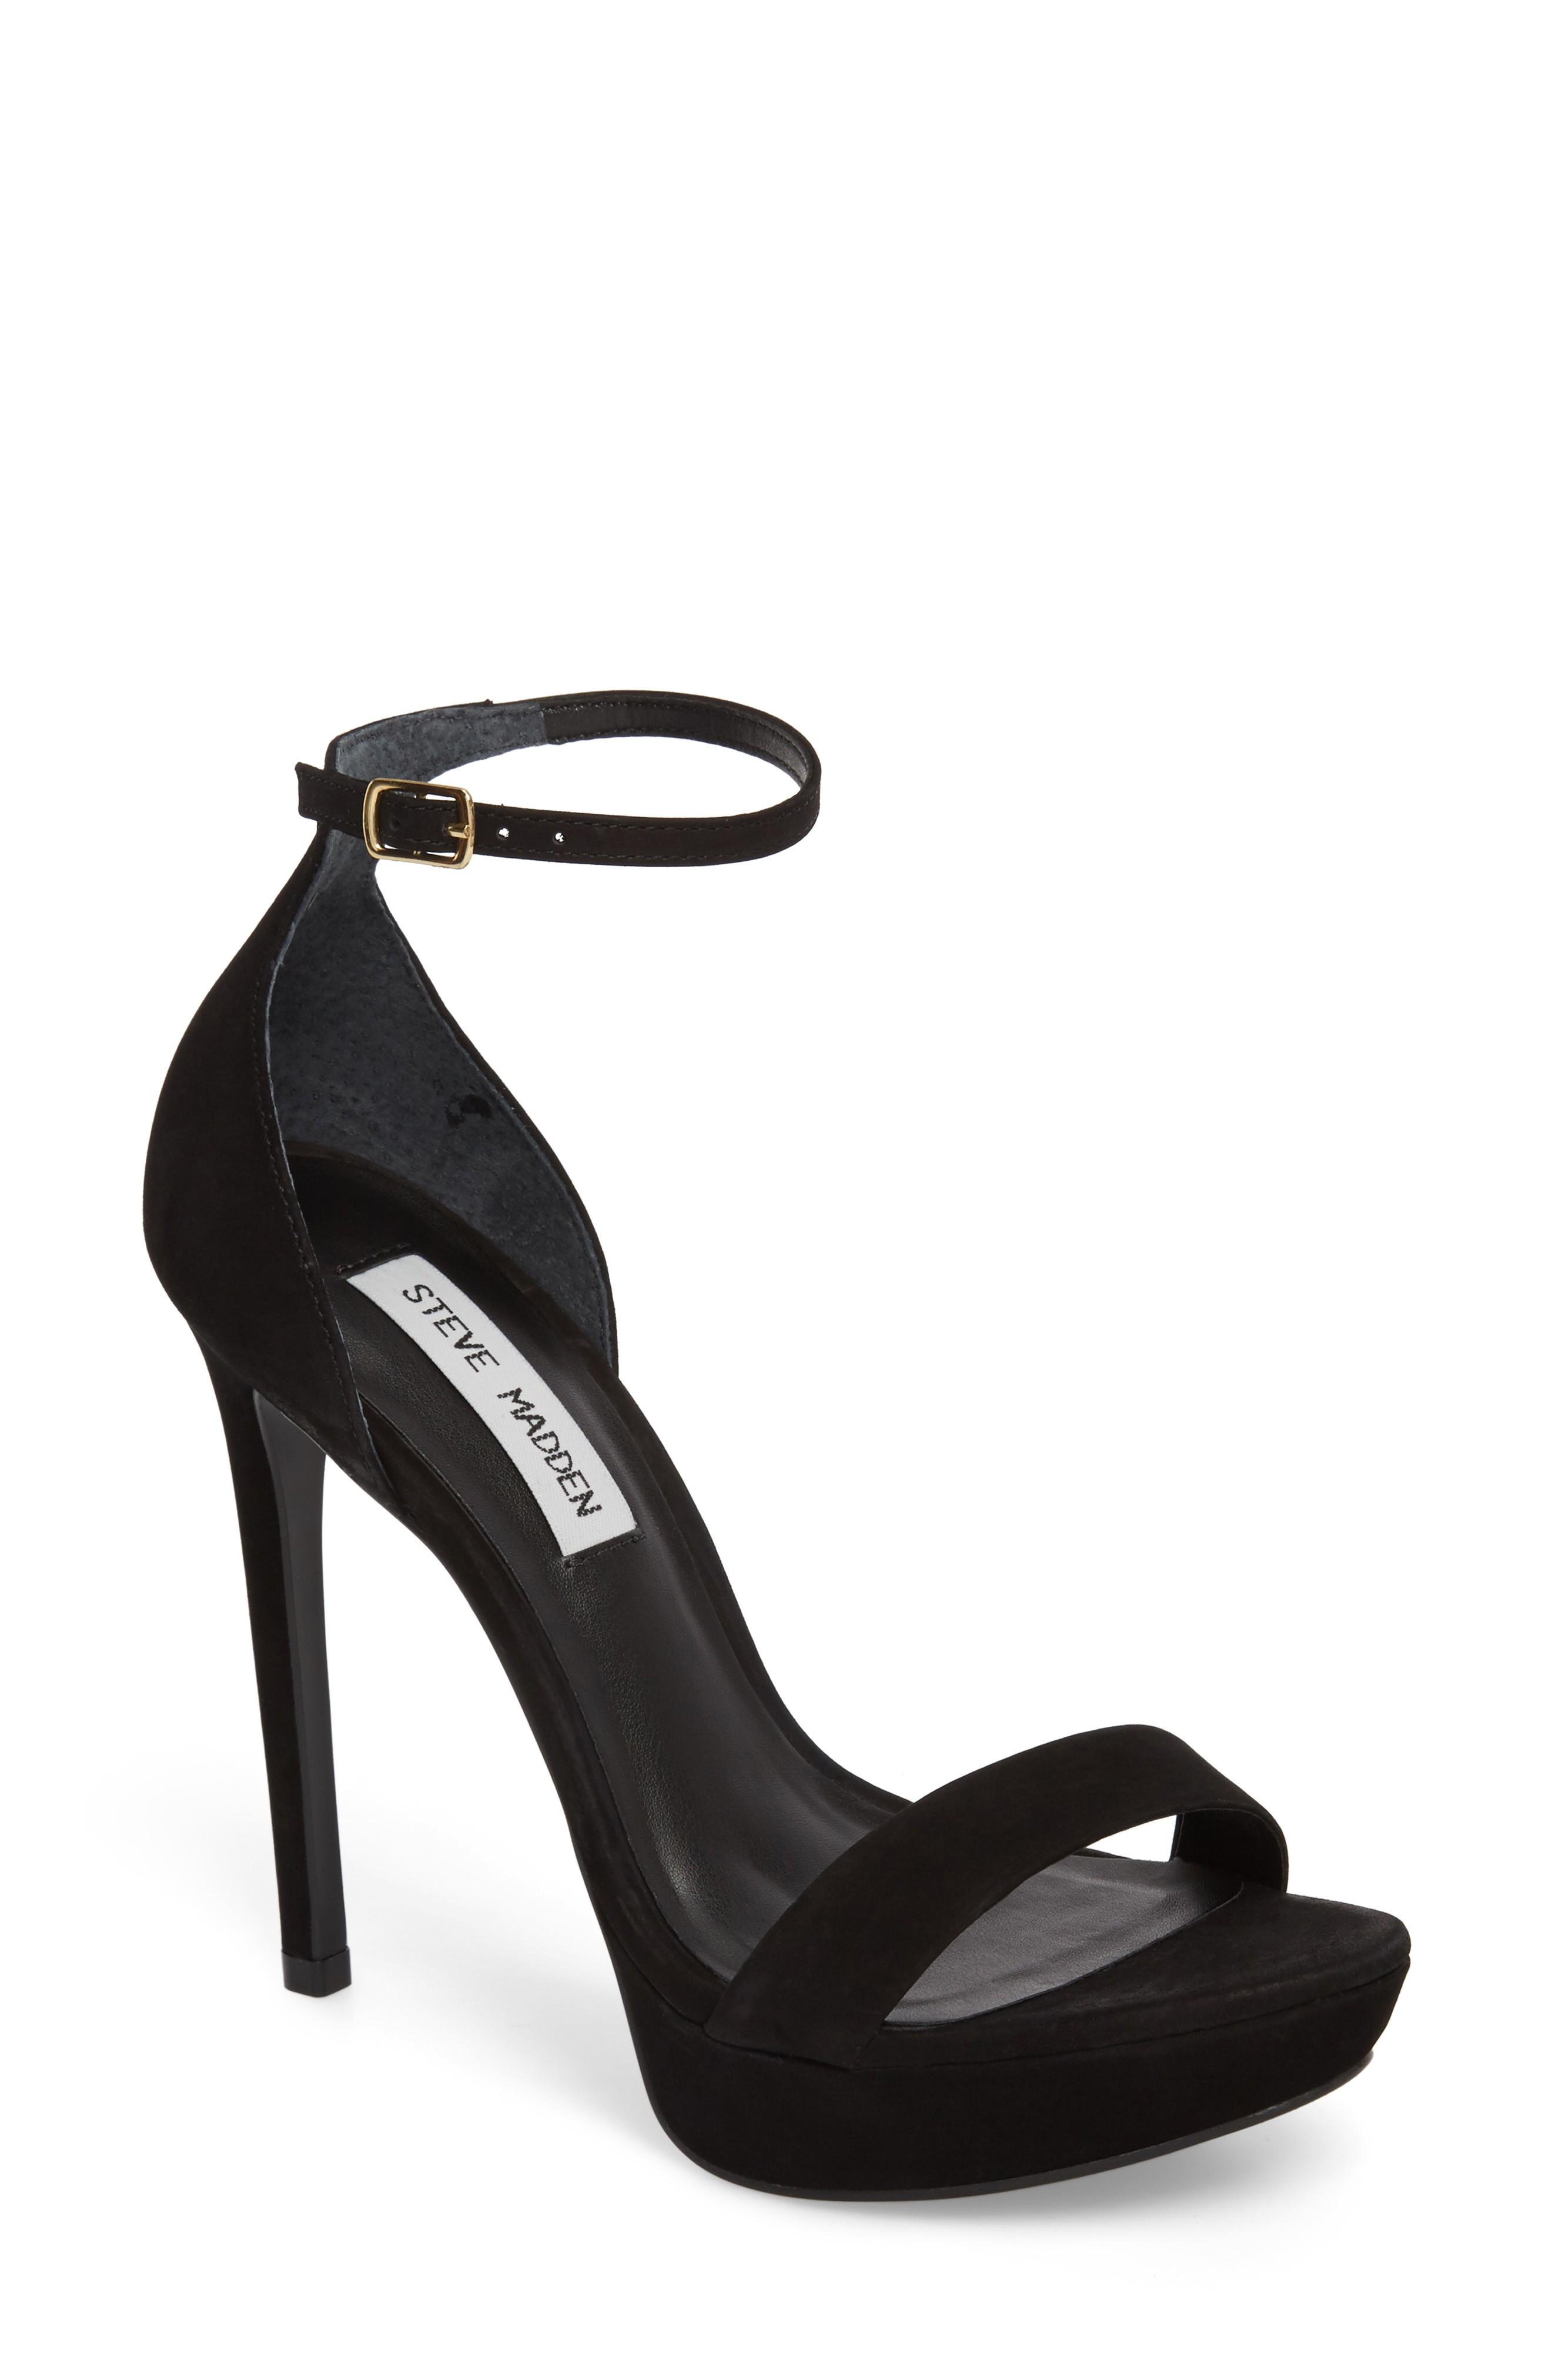 3cc64186f38 A sky-high stiletto and covered platform add serious height to a strappy  sandal. Style Name  Steve Madden Starlet Platform Sandal (Women).